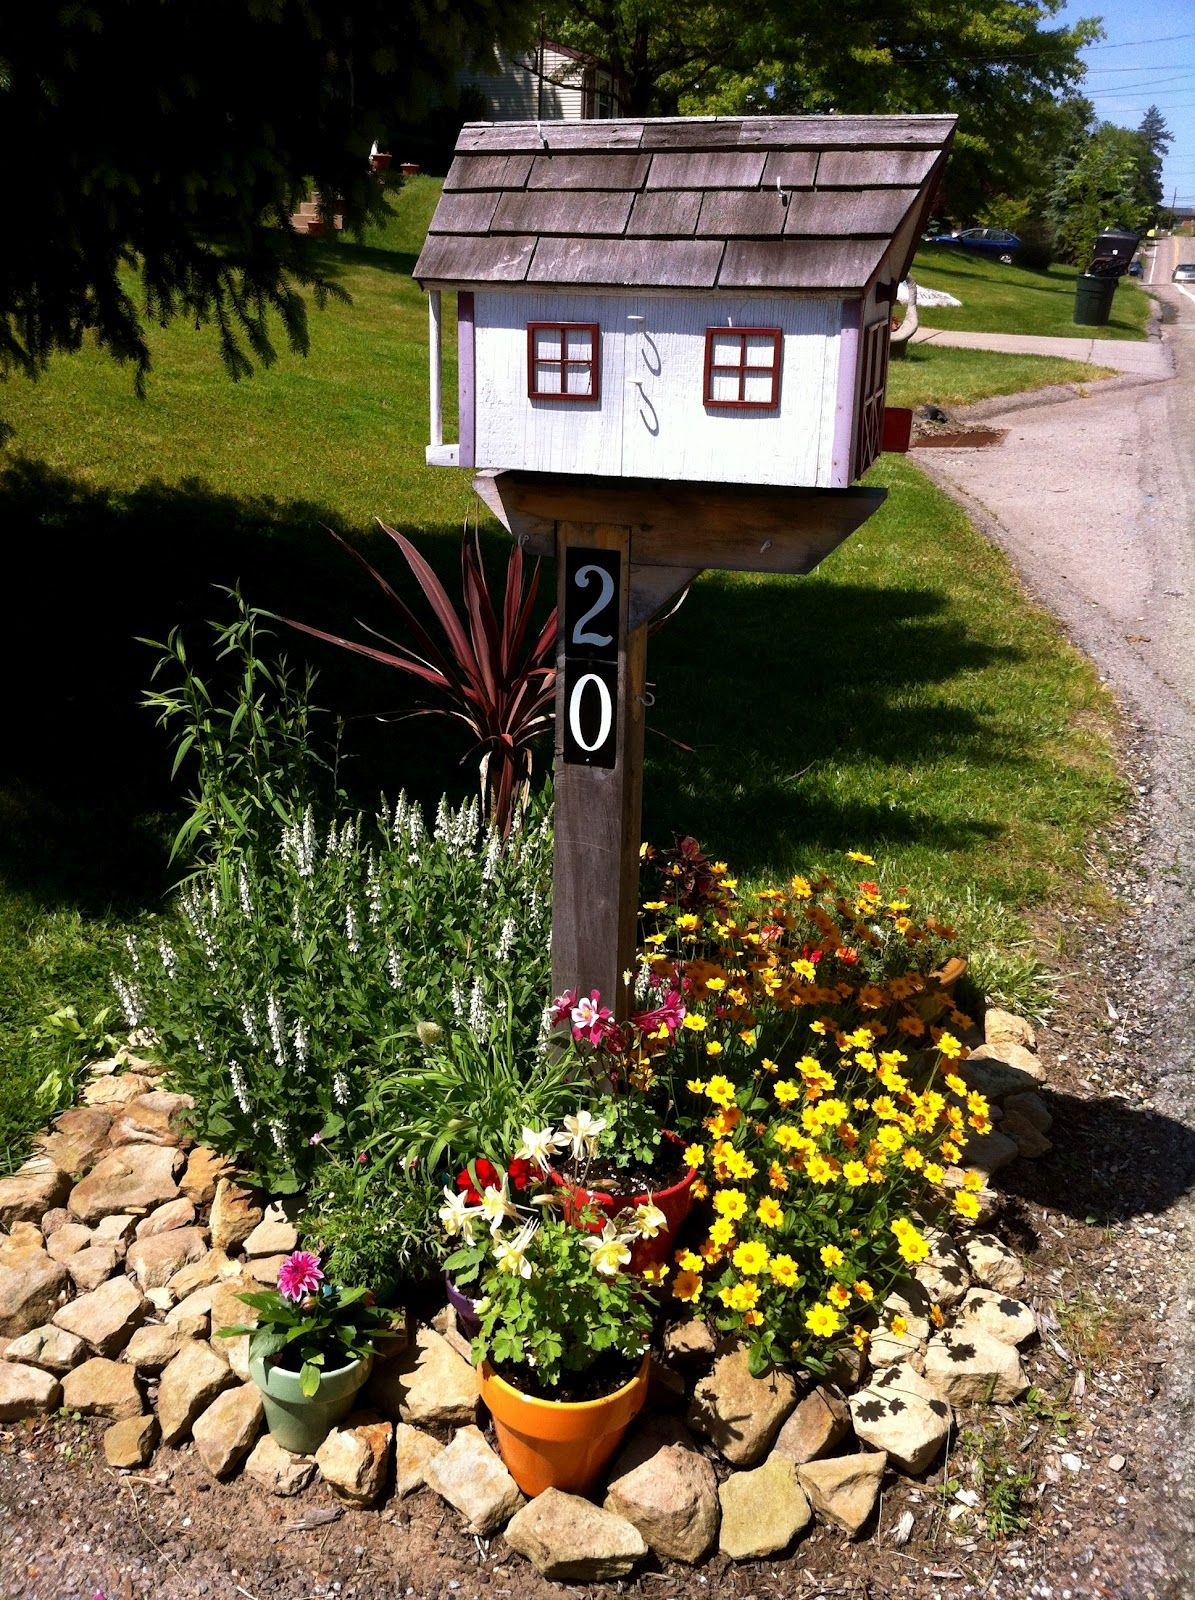 Landscaping Ideas Around Mailbox hen how to Home Decorating Ideas